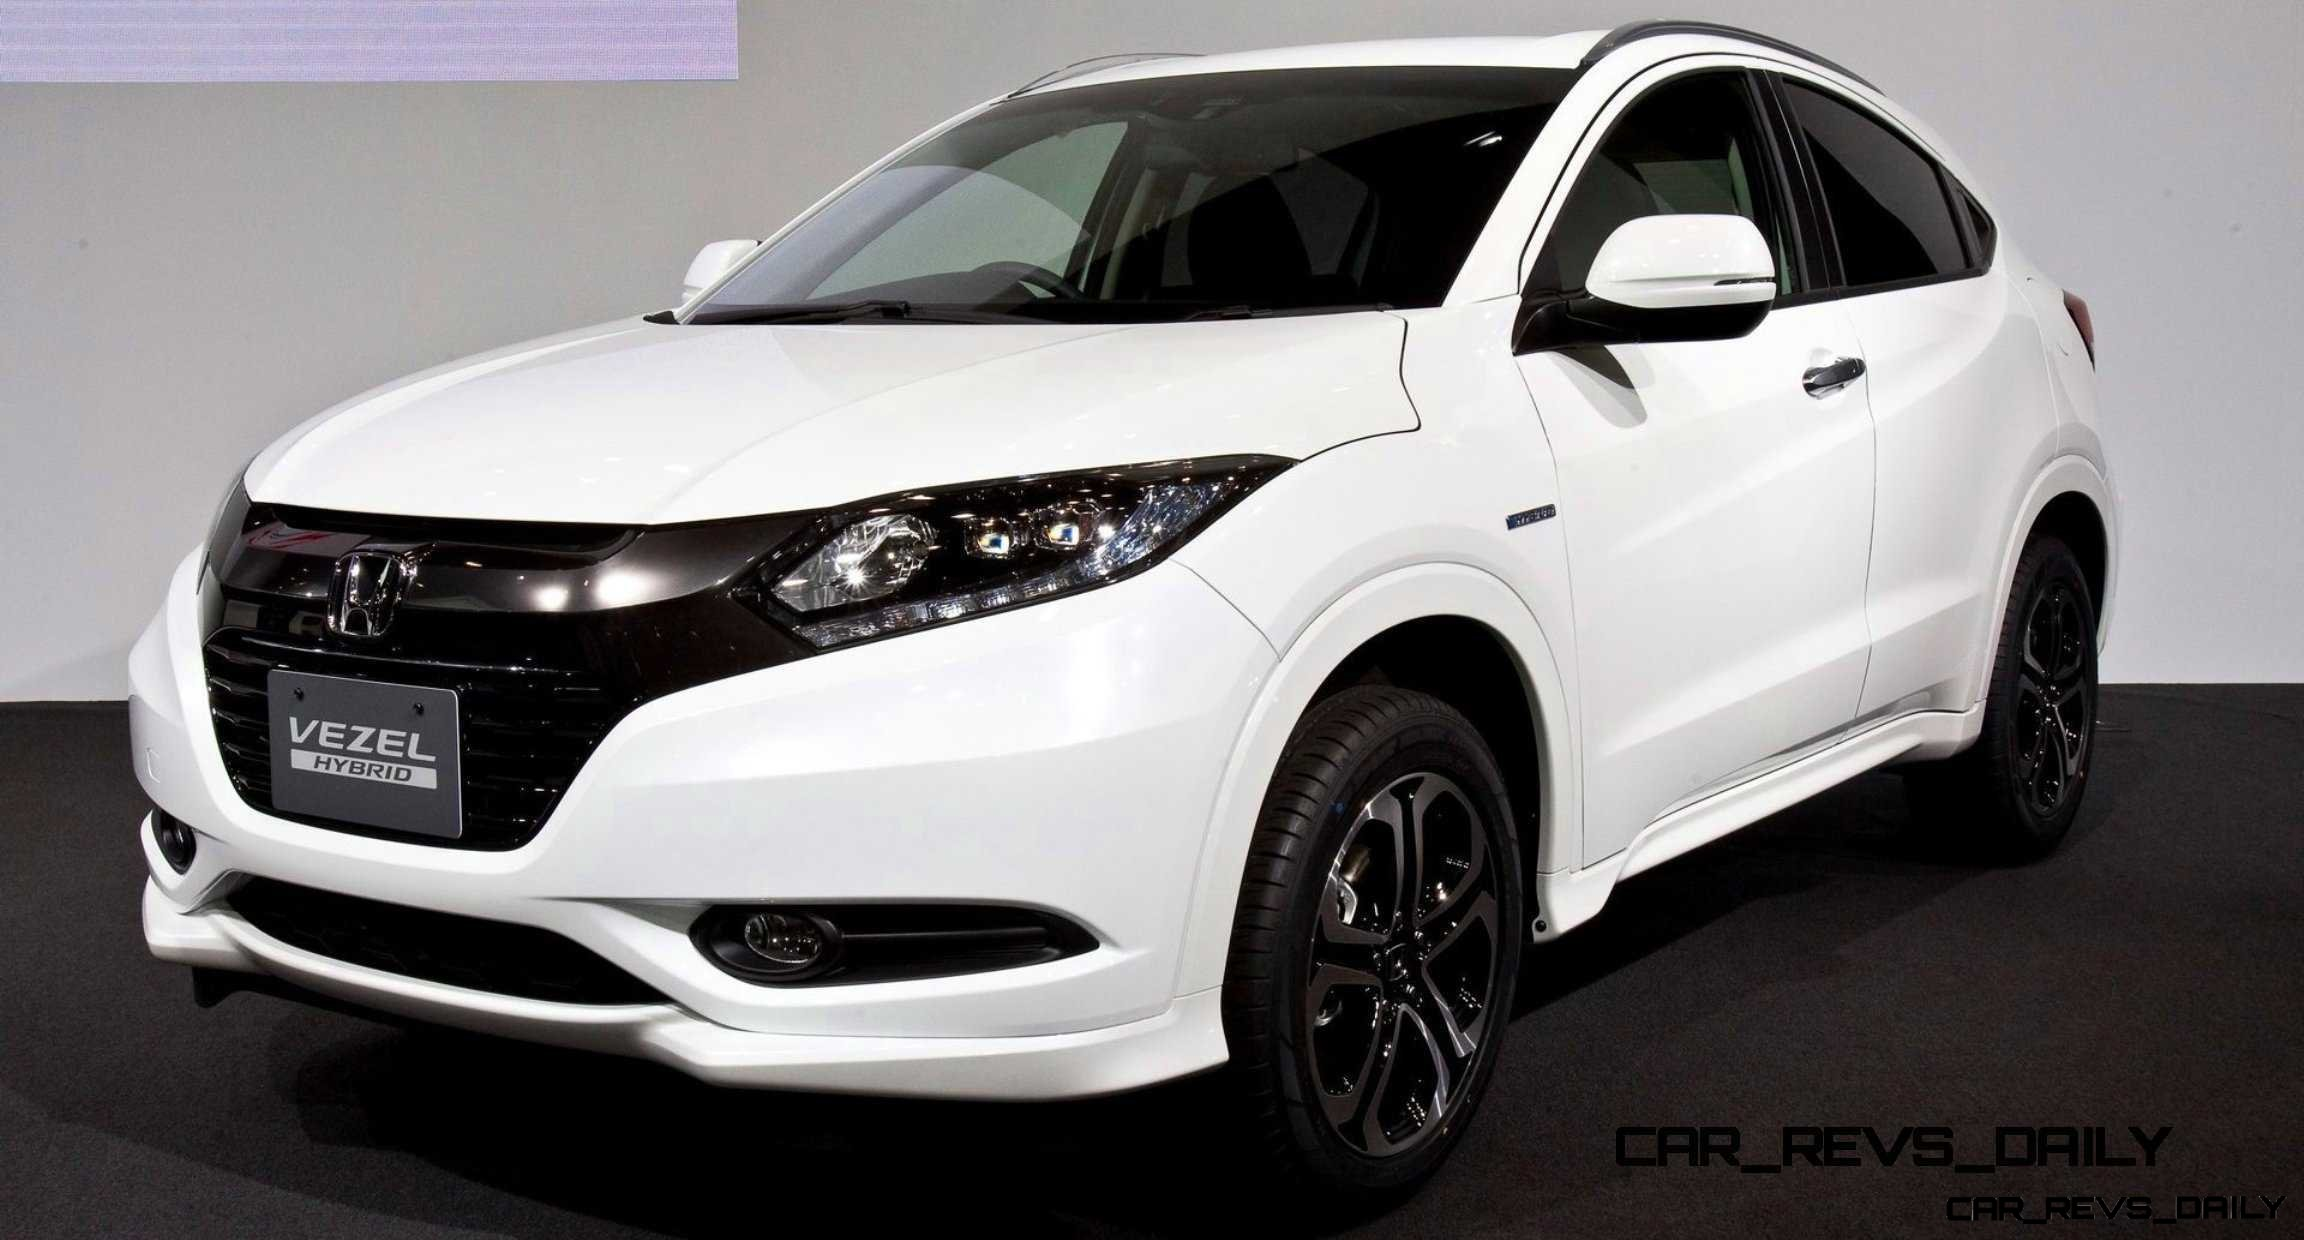 Cool 2015 Honda Vezel Hybrid Previews Spring 2014 Civic